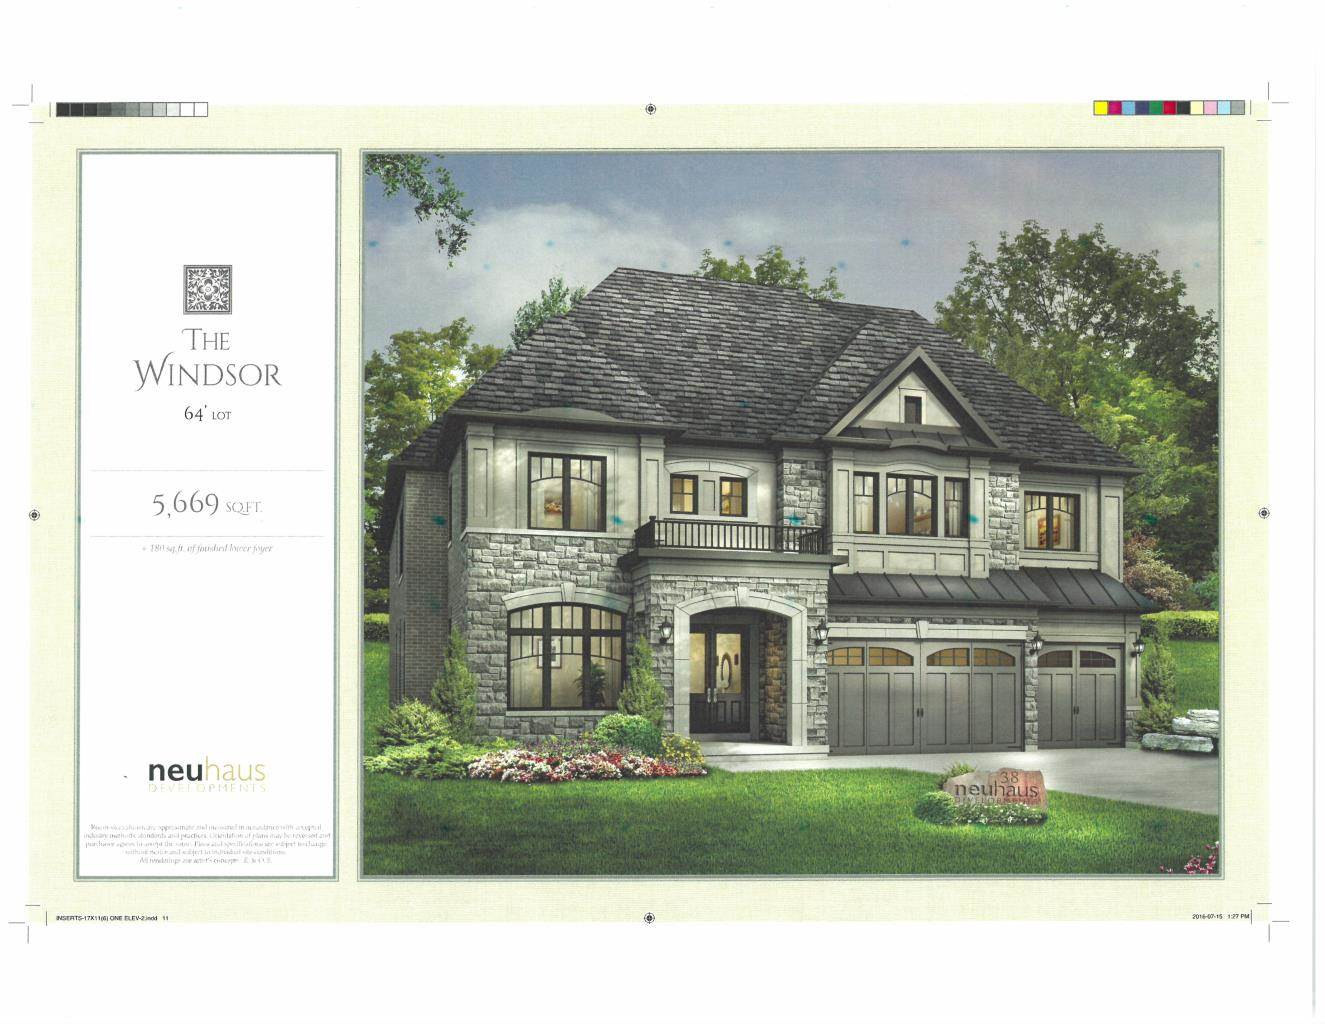 Residencial à venda em BRAND NEW Custom Home in Richmond Hill (5,669 Sq.ft), RICHMOND HILL, Ontario ,L4E 2V8  , Canadá